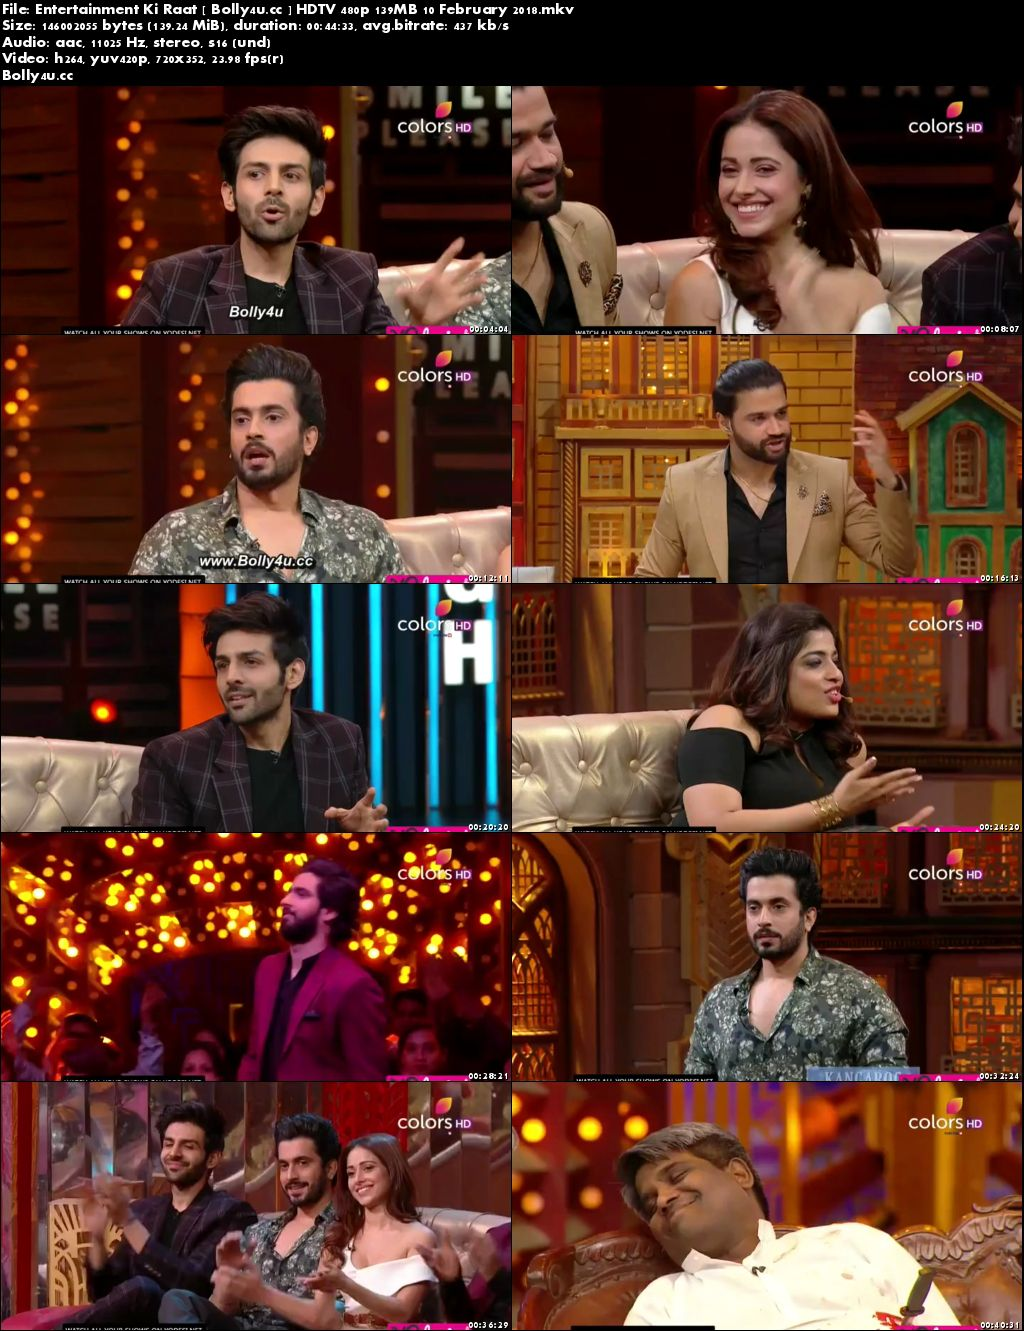 Entertainment Ki Raat HDTV 480p 140MB 10 February 2018 Download